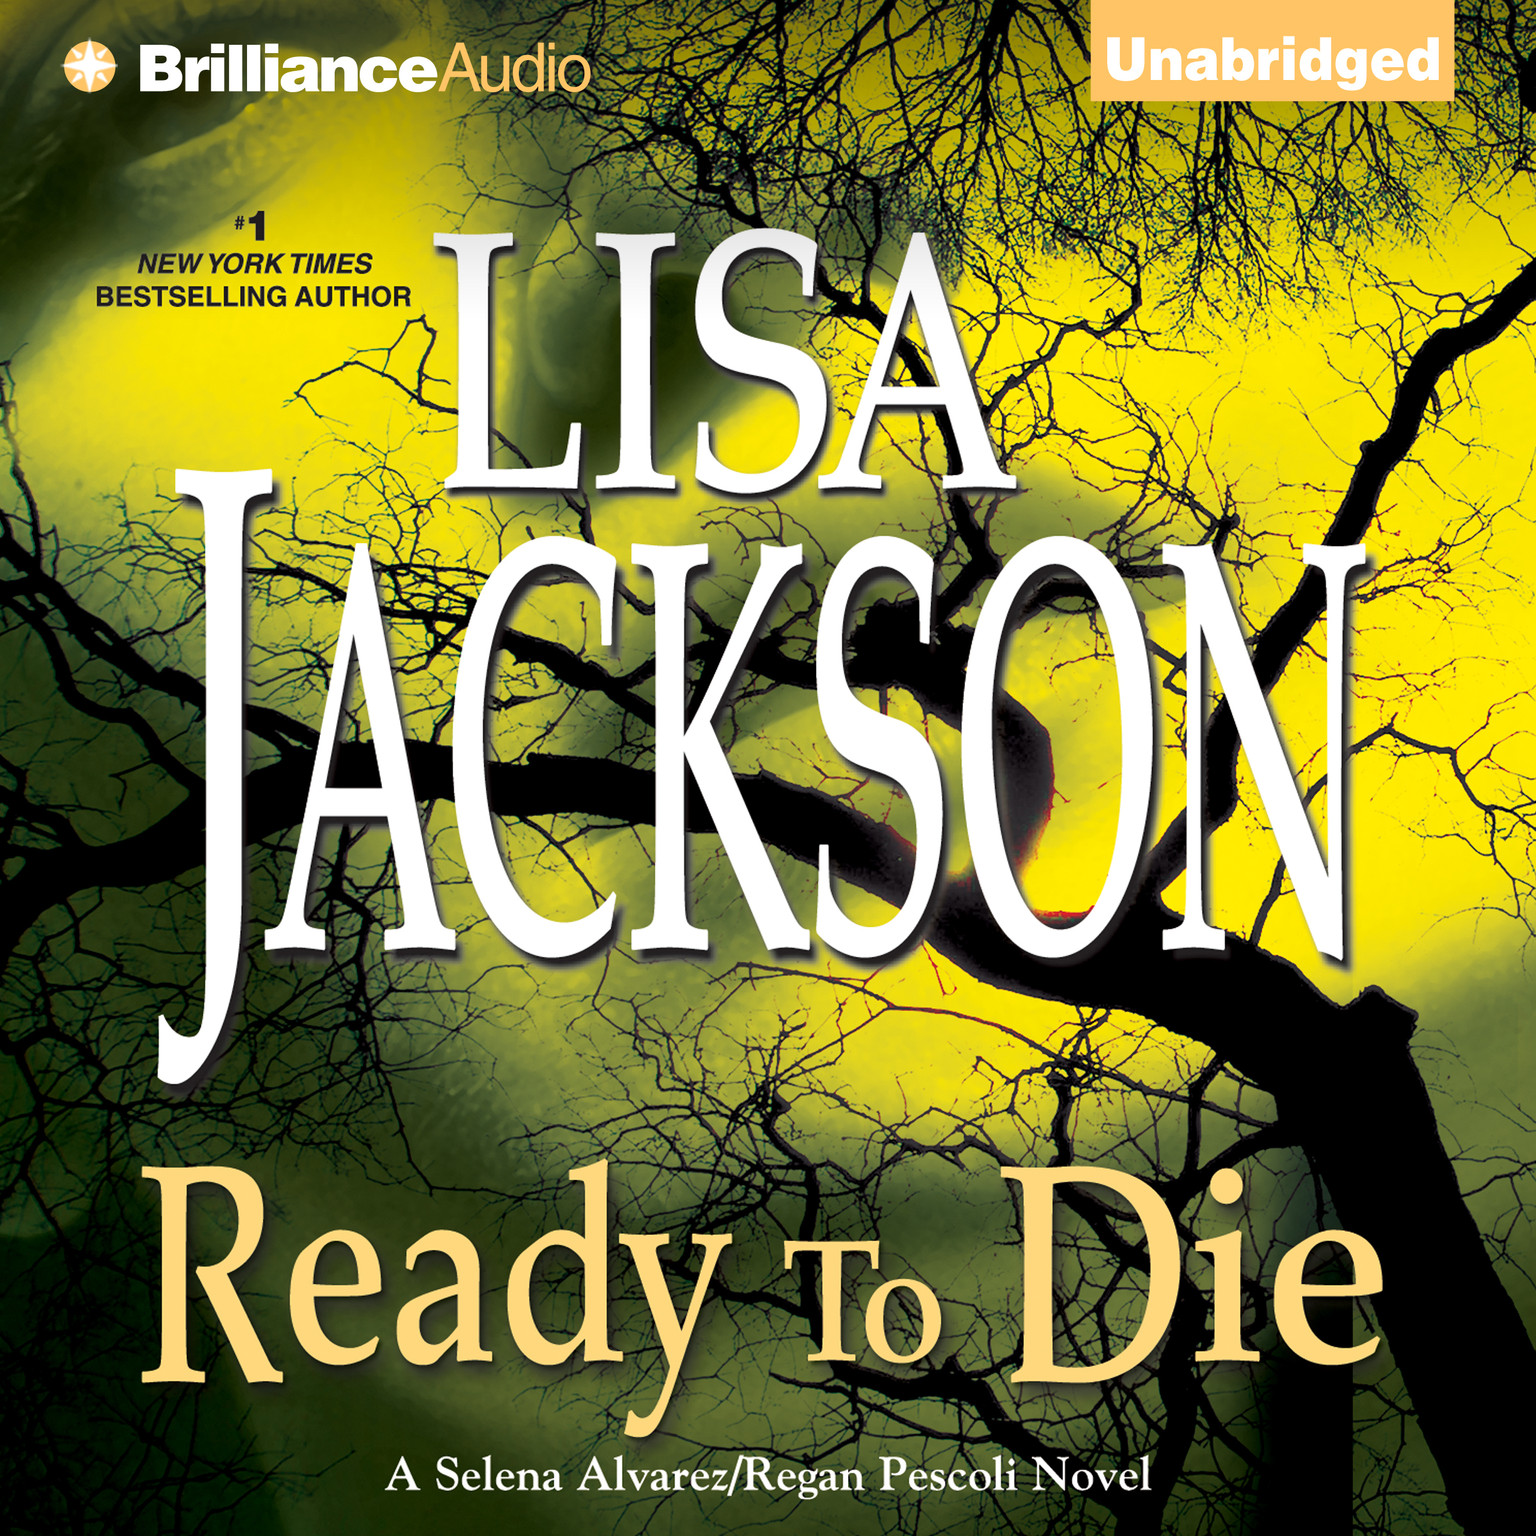 Printable Ready to Die Audiobook Cover Art